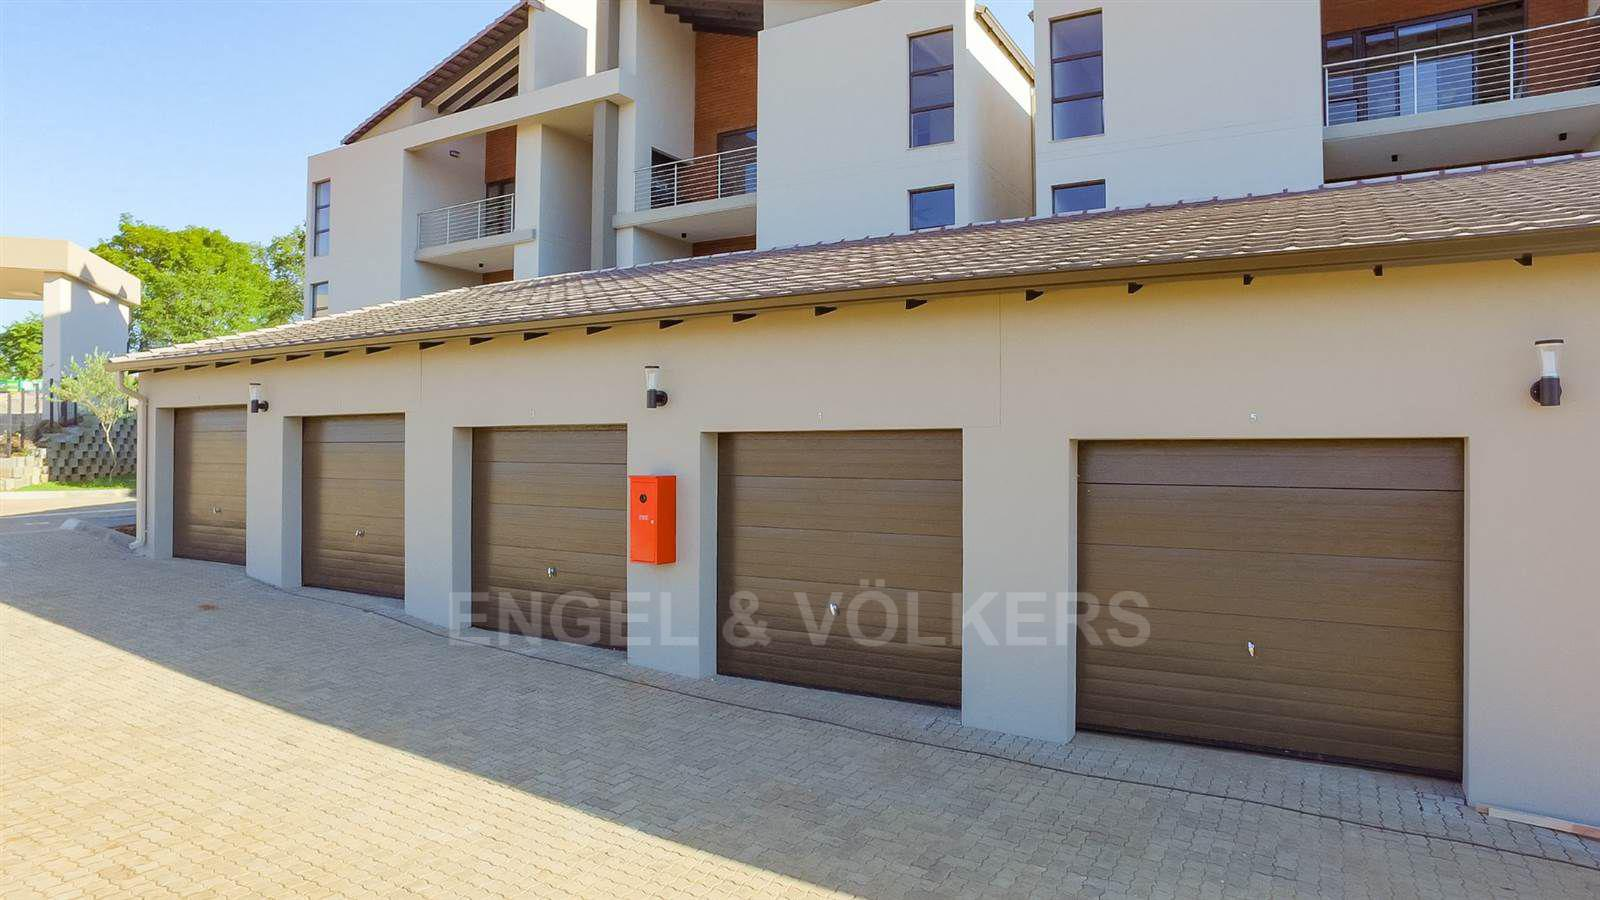 Apartment in Ifafi - Block of garages